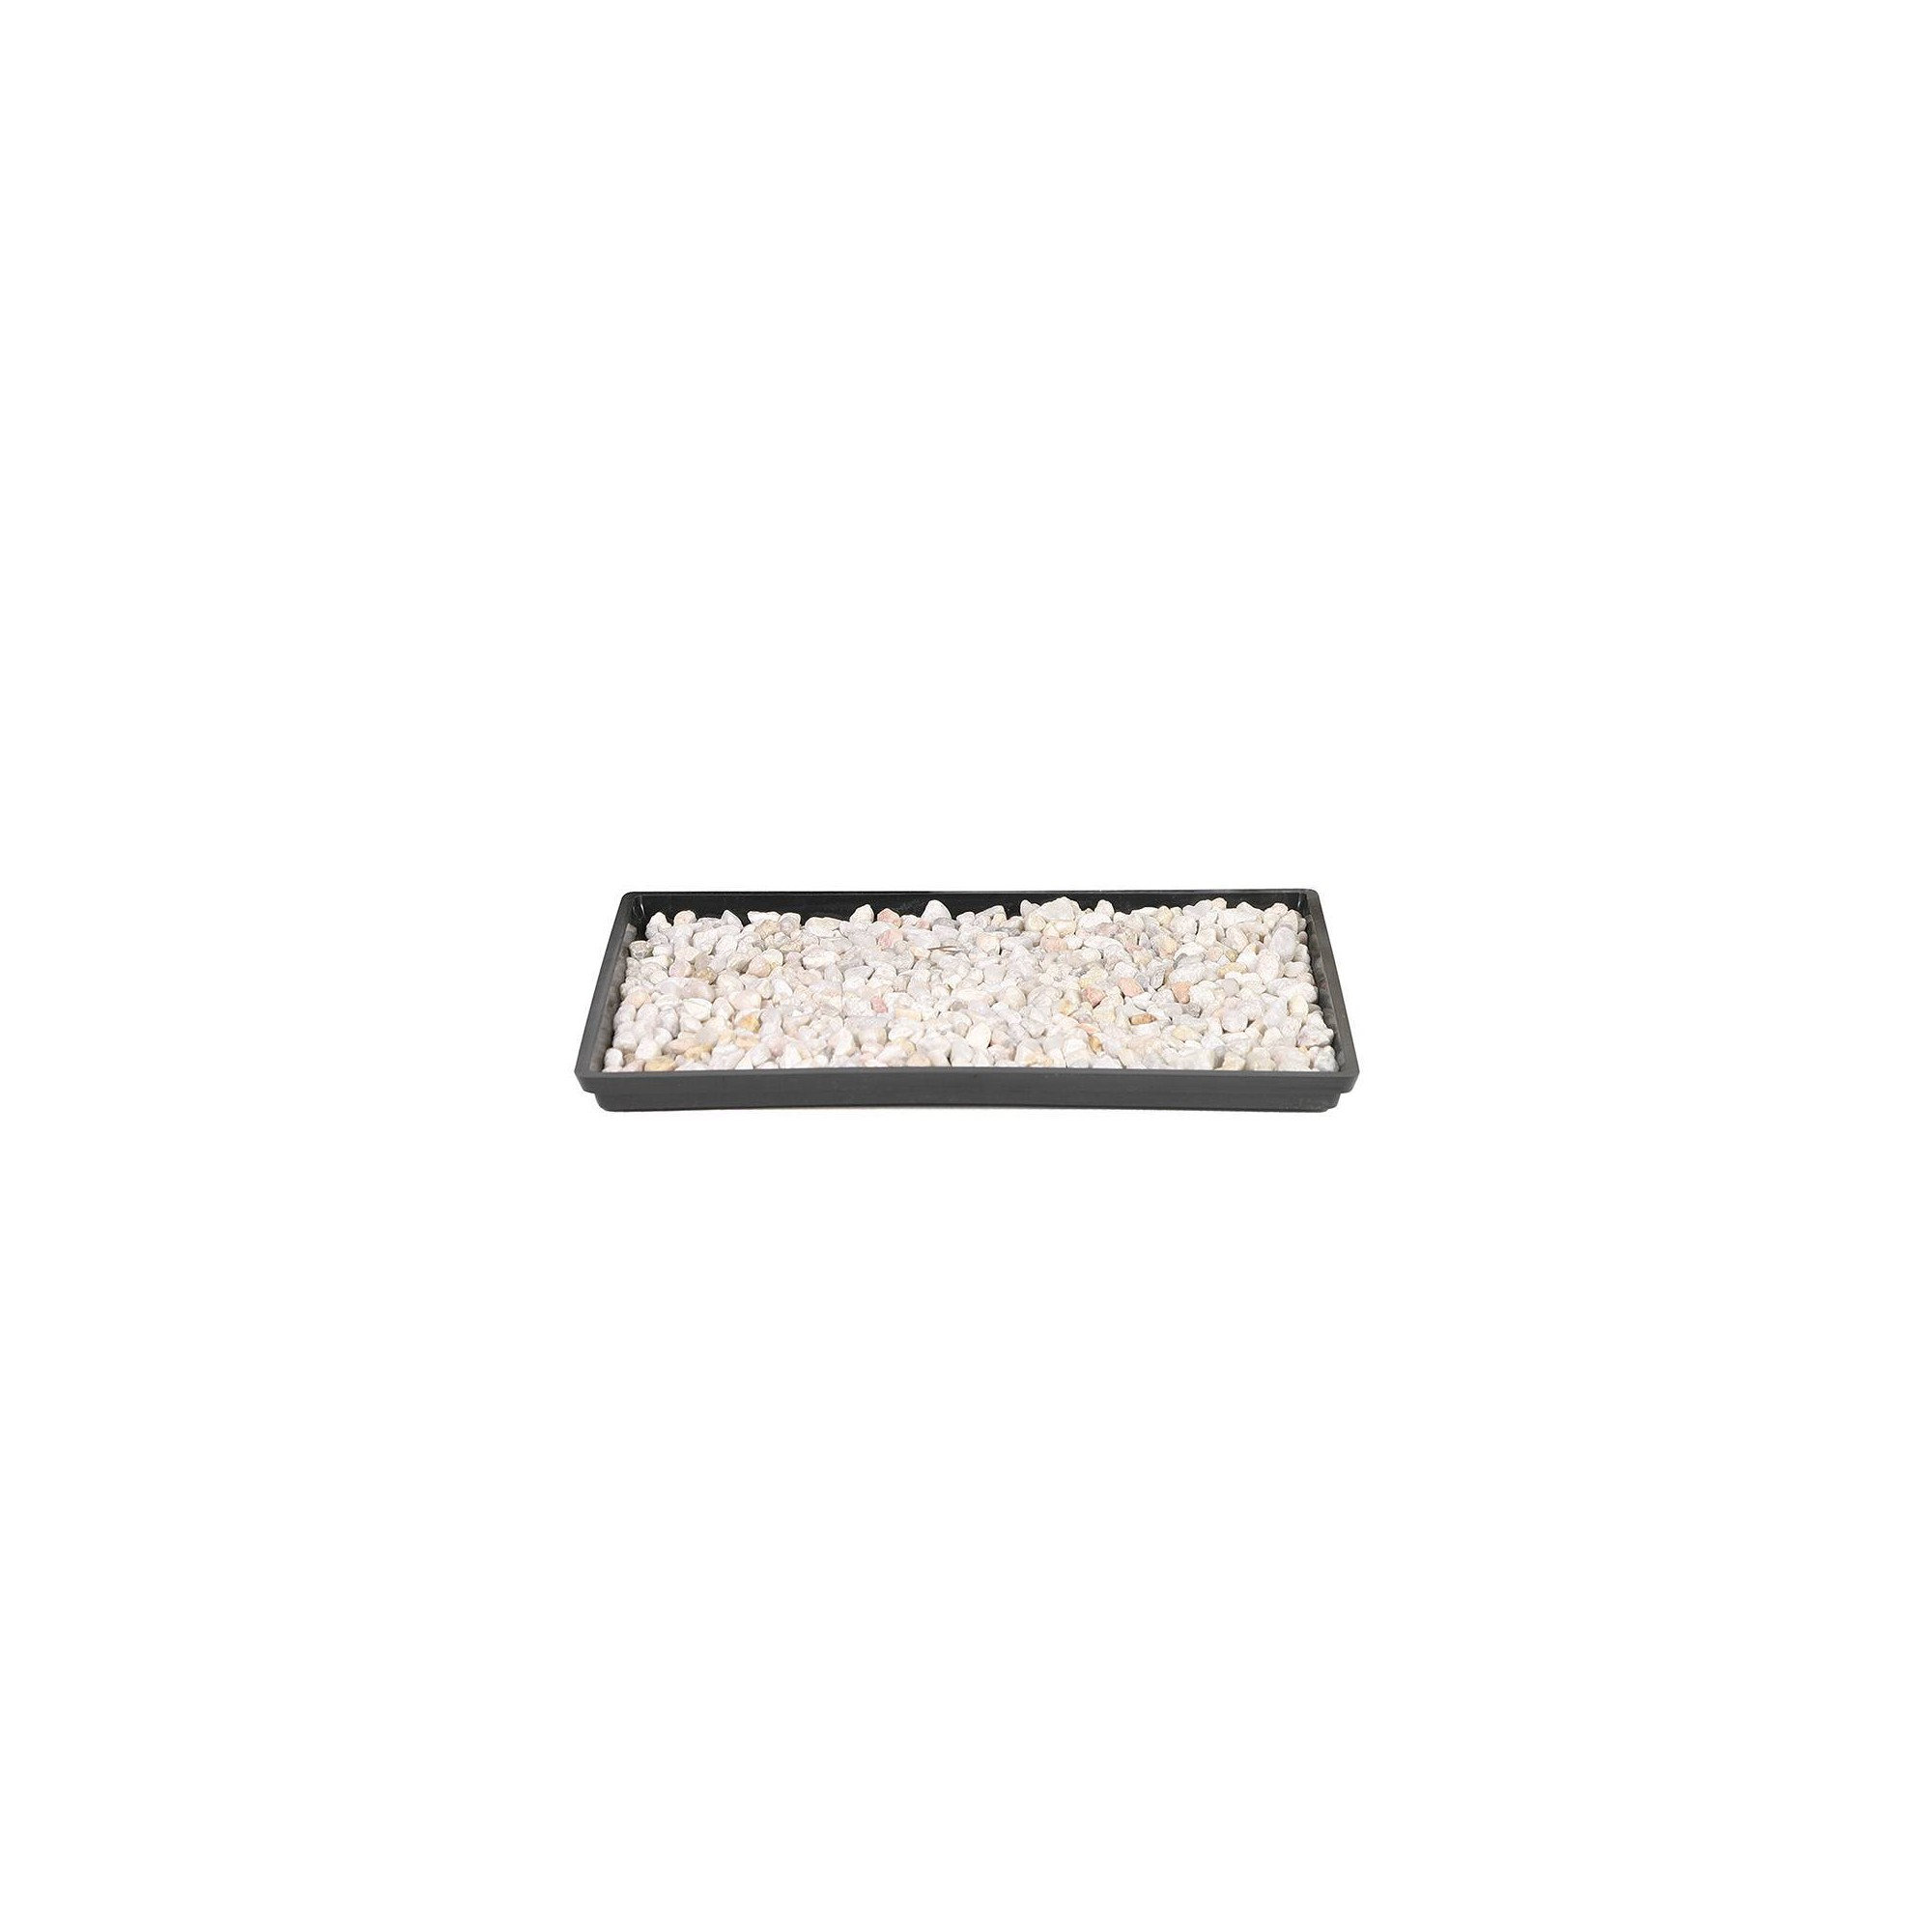 13 Humidity Tray - Brussel's Bonsai, Multi-Colored